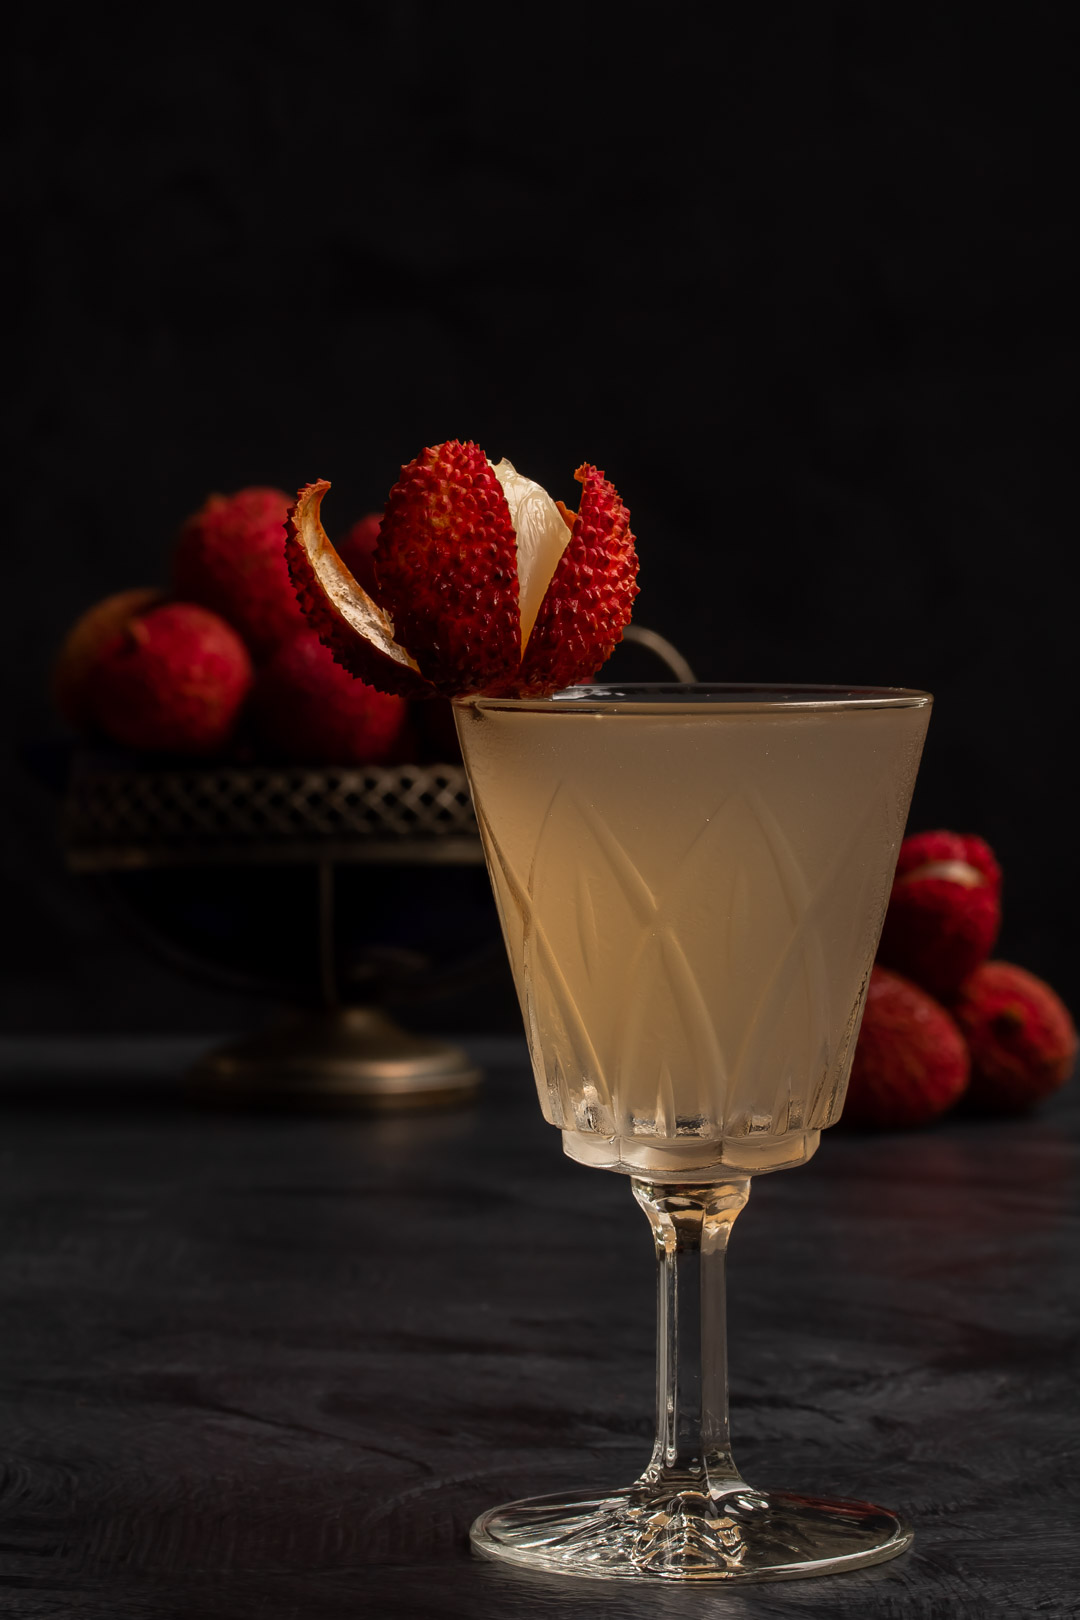 lychee reviver with lychees in background